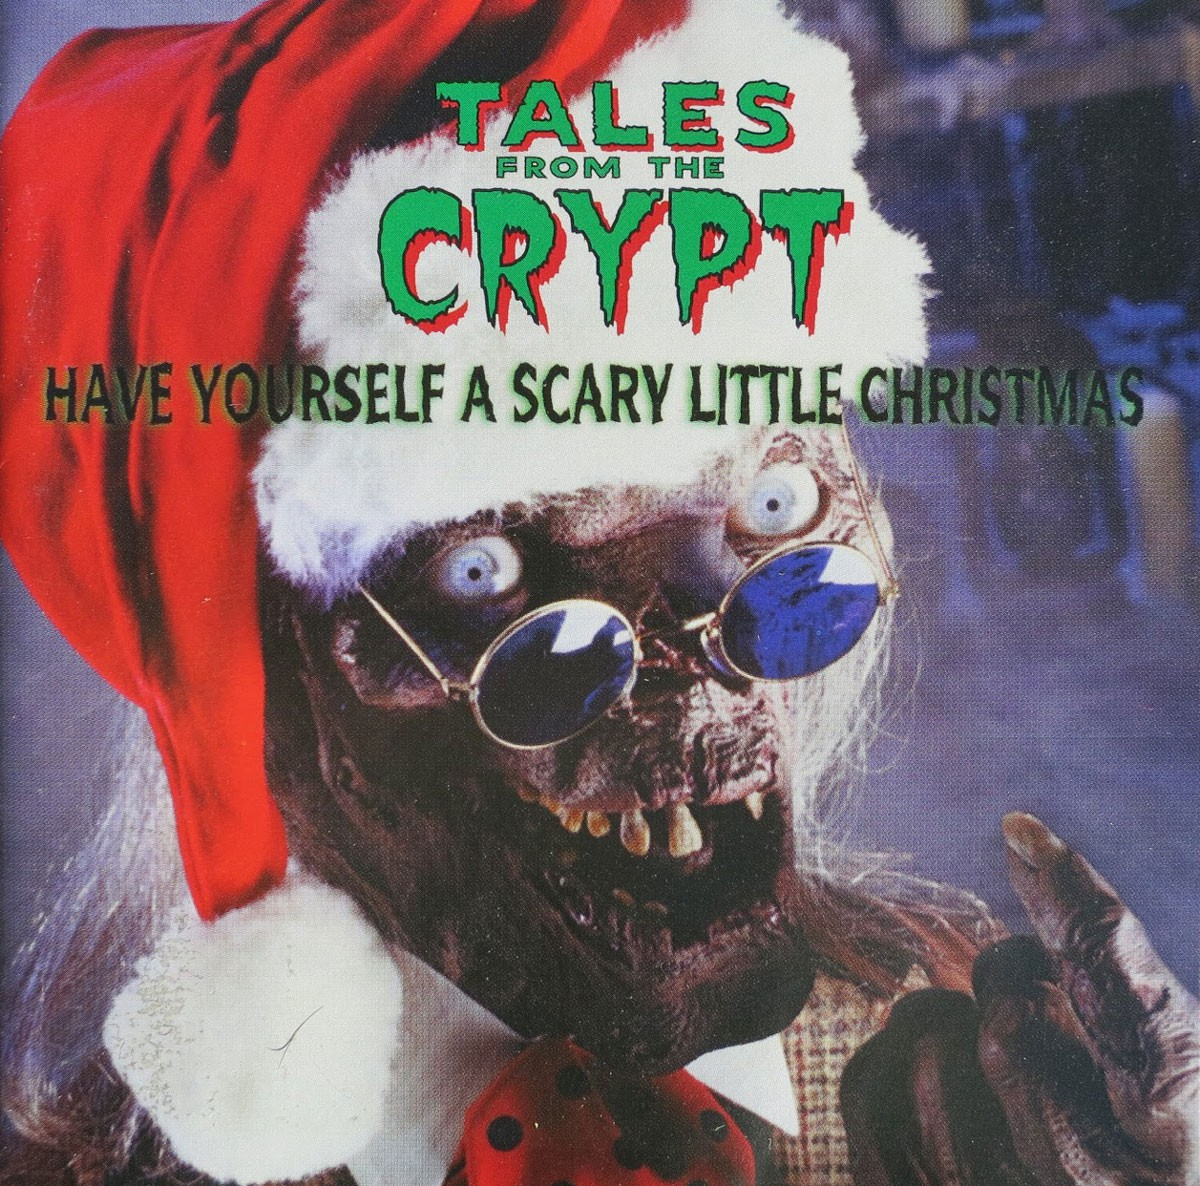 Remember When The CRYPTKEEPER Made A Christmas Album? – Blumhouse.com